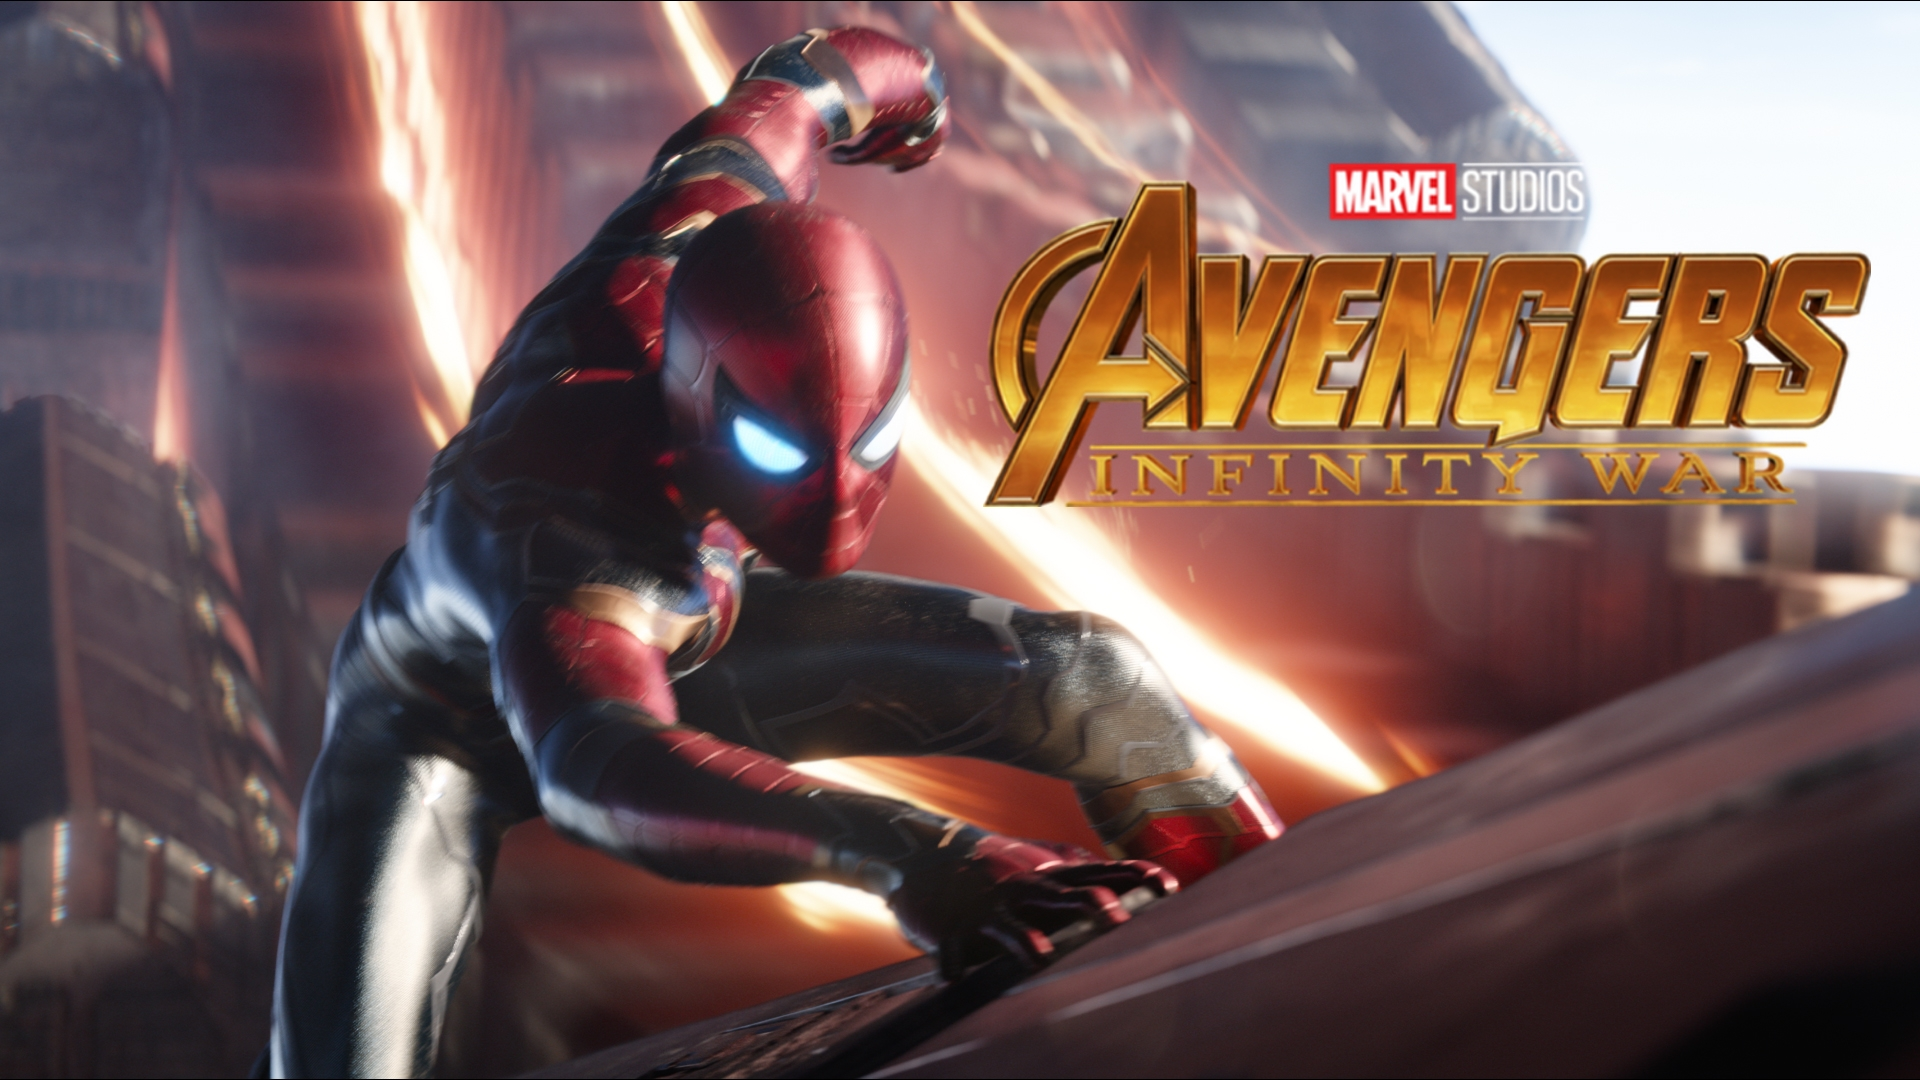 AIW featured Iron Spider